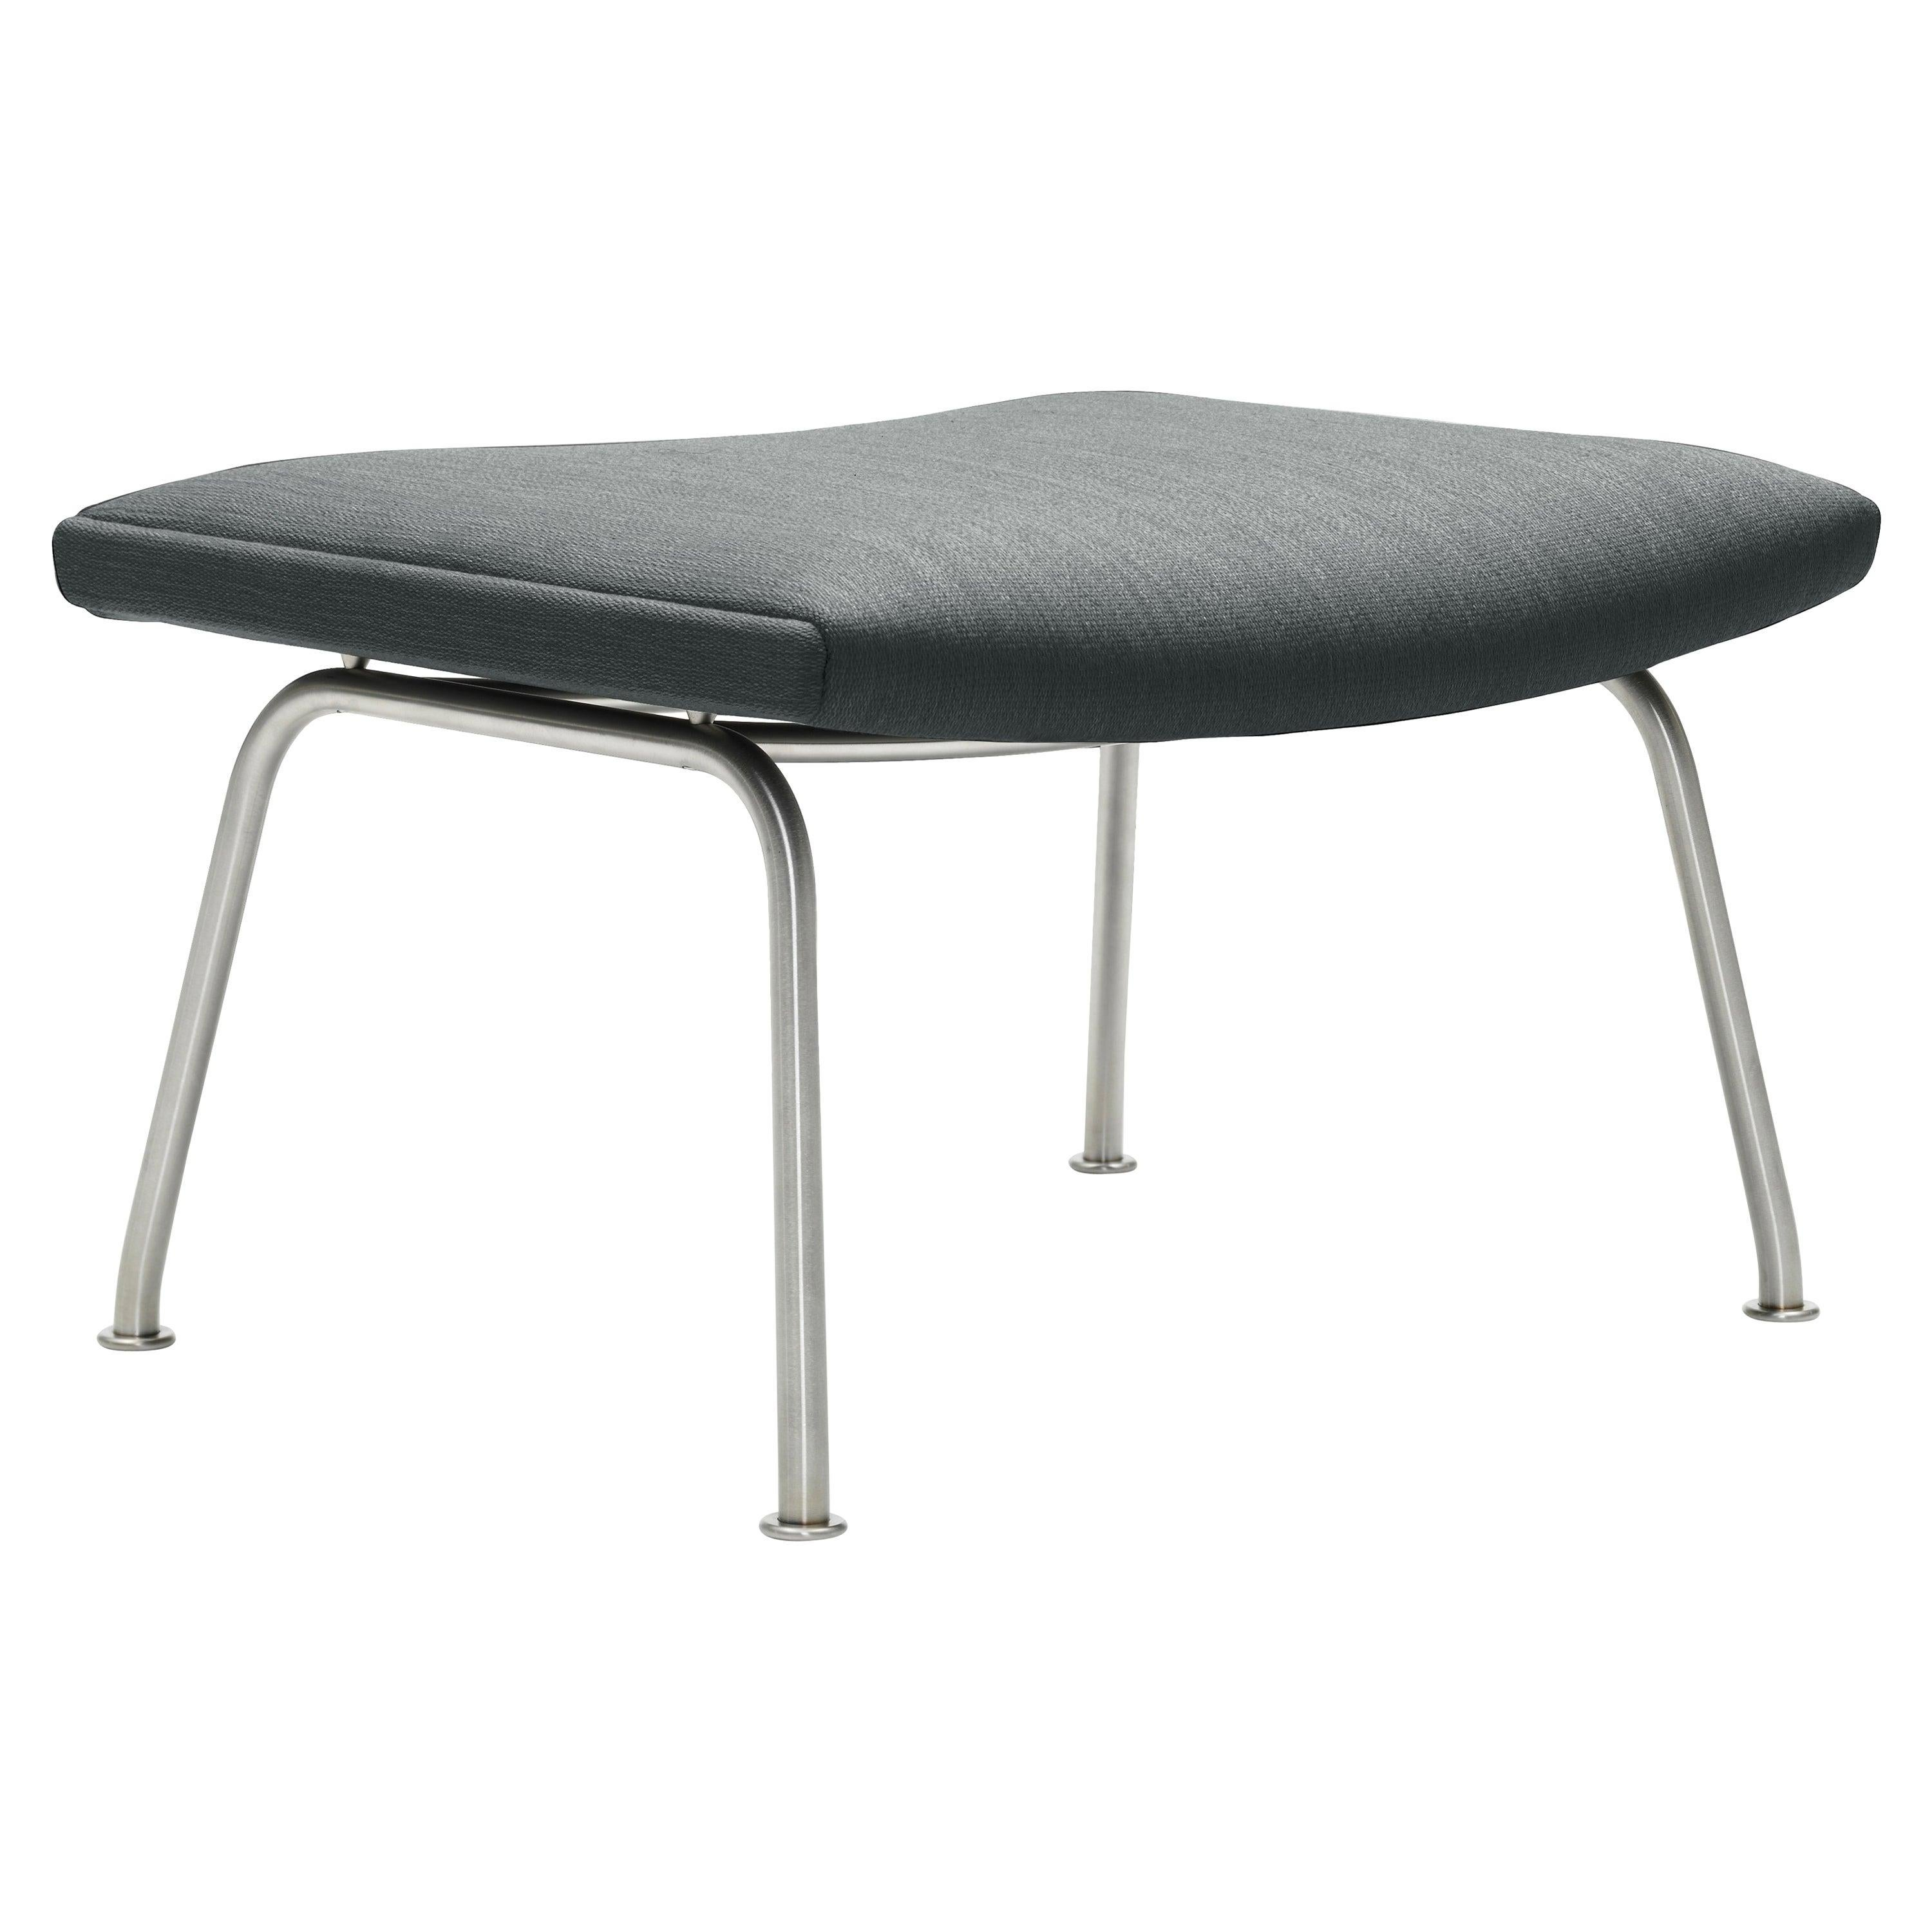 CH446 Footrest in Stainless Steel with Fiord 151 Fabric Seat by Hans J. Wegner